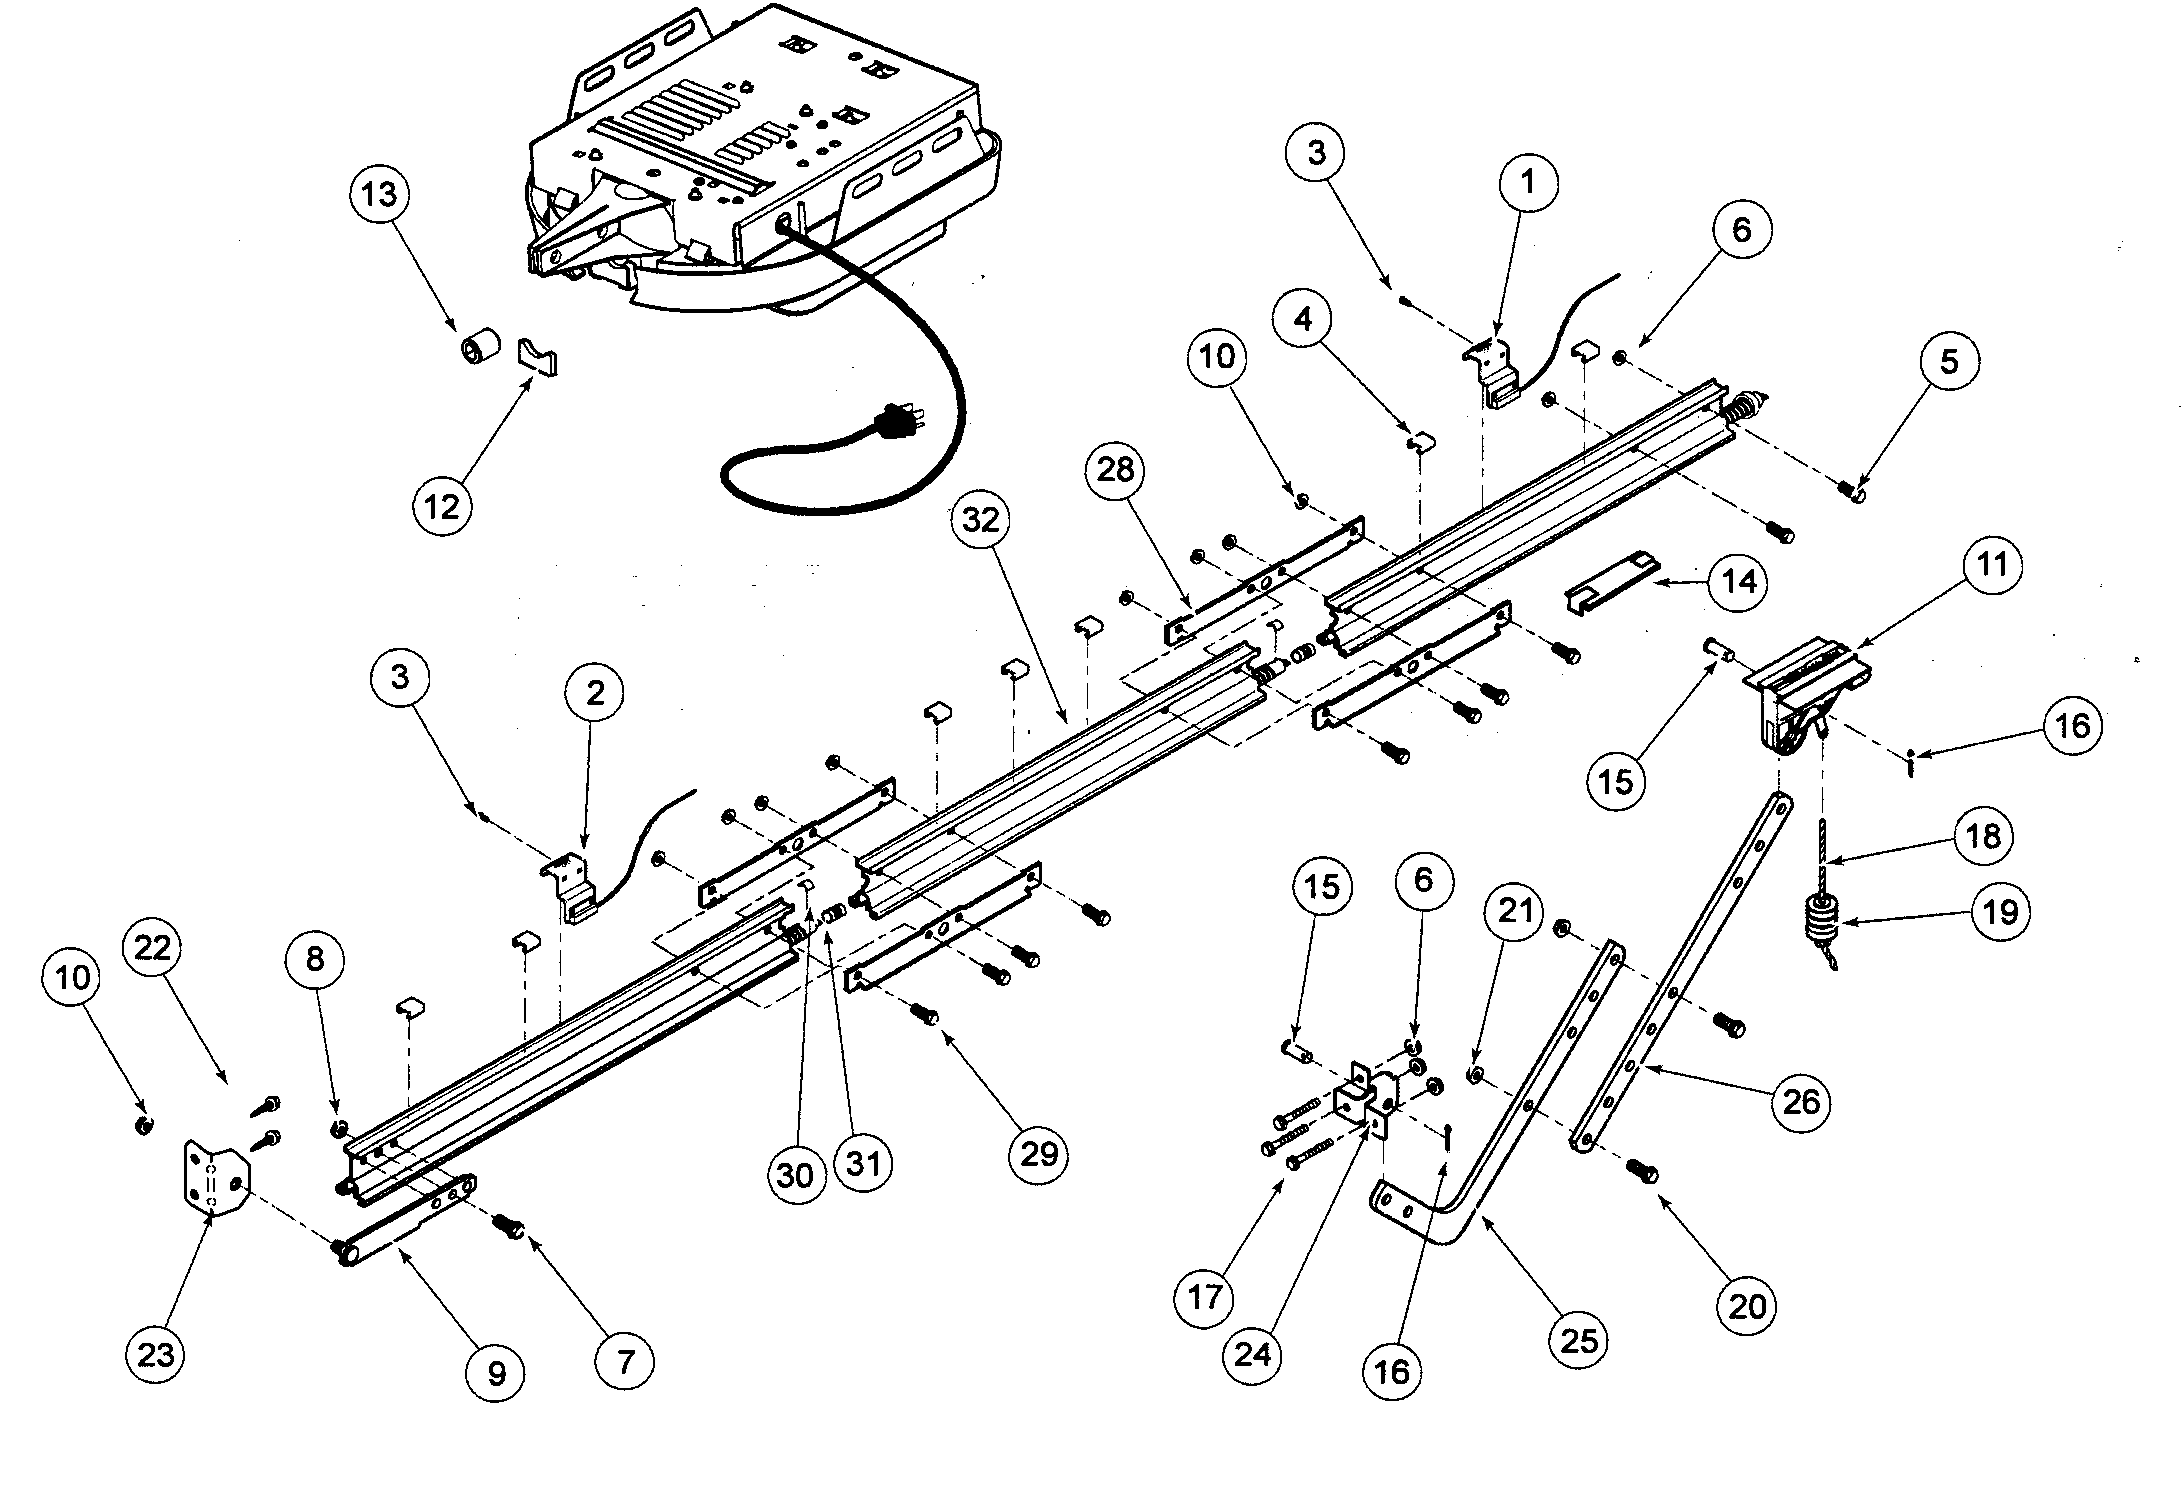 Garage Door Opener Parts Diagram 301 Moved Permanently